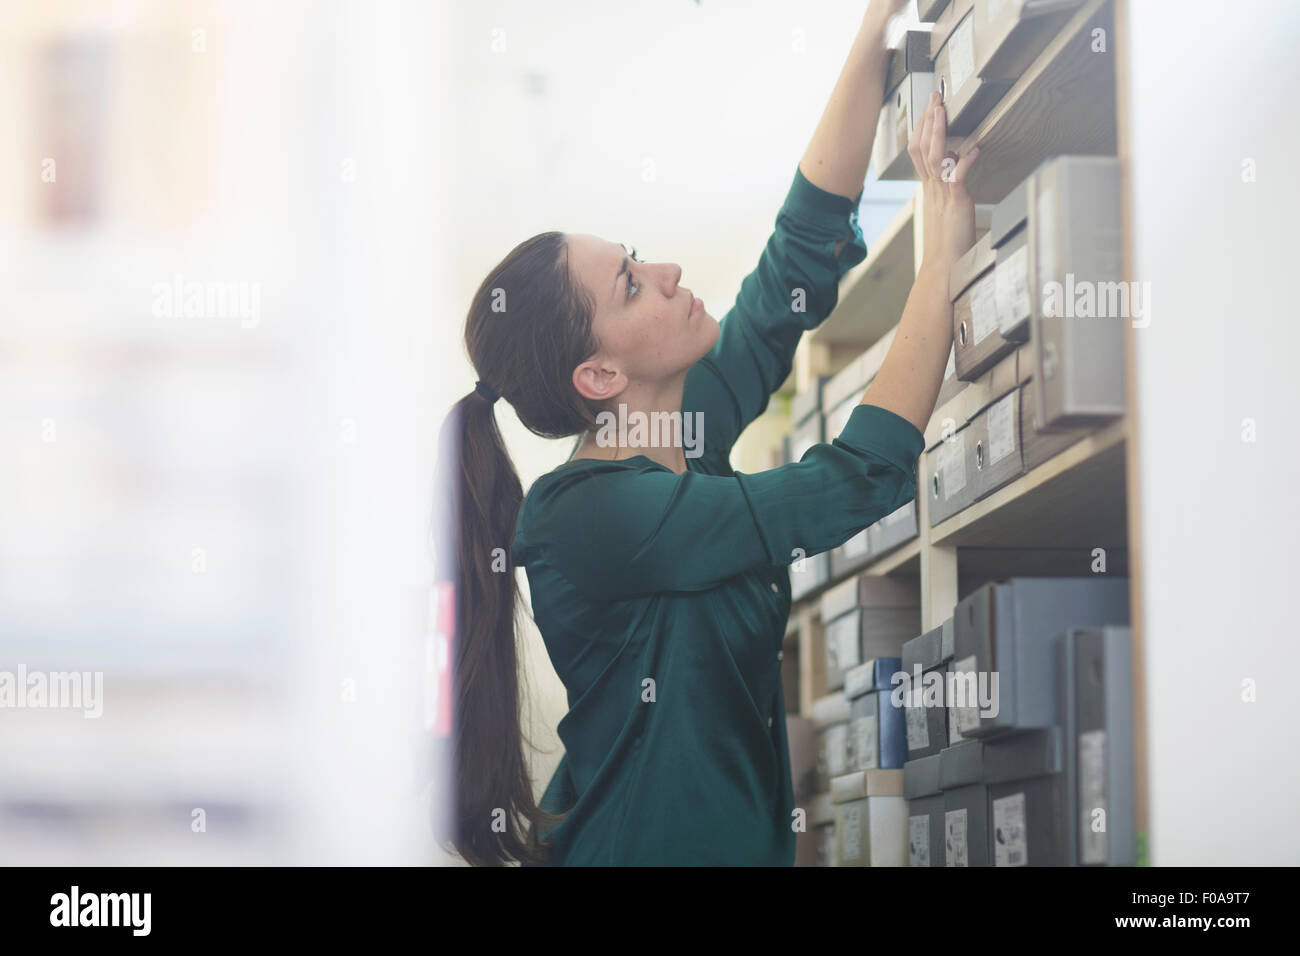 Female sales assistant reaching for shoe box in shoe shop stockroom - Stock Image